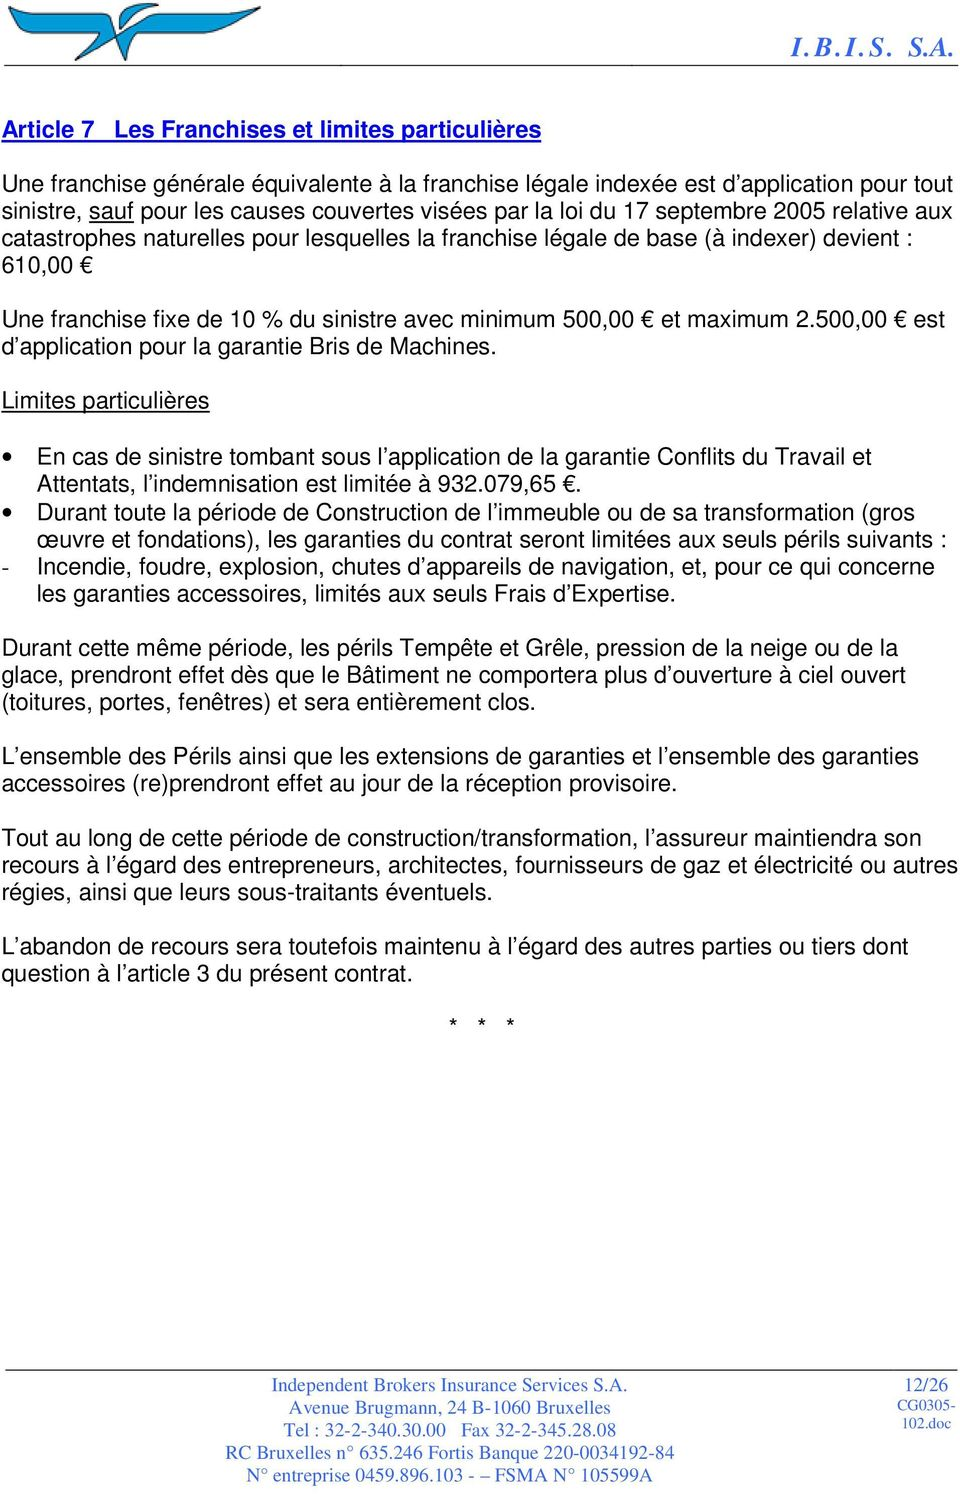 maximum 2.500,00 est d application pour la garantie Bris de Machines.